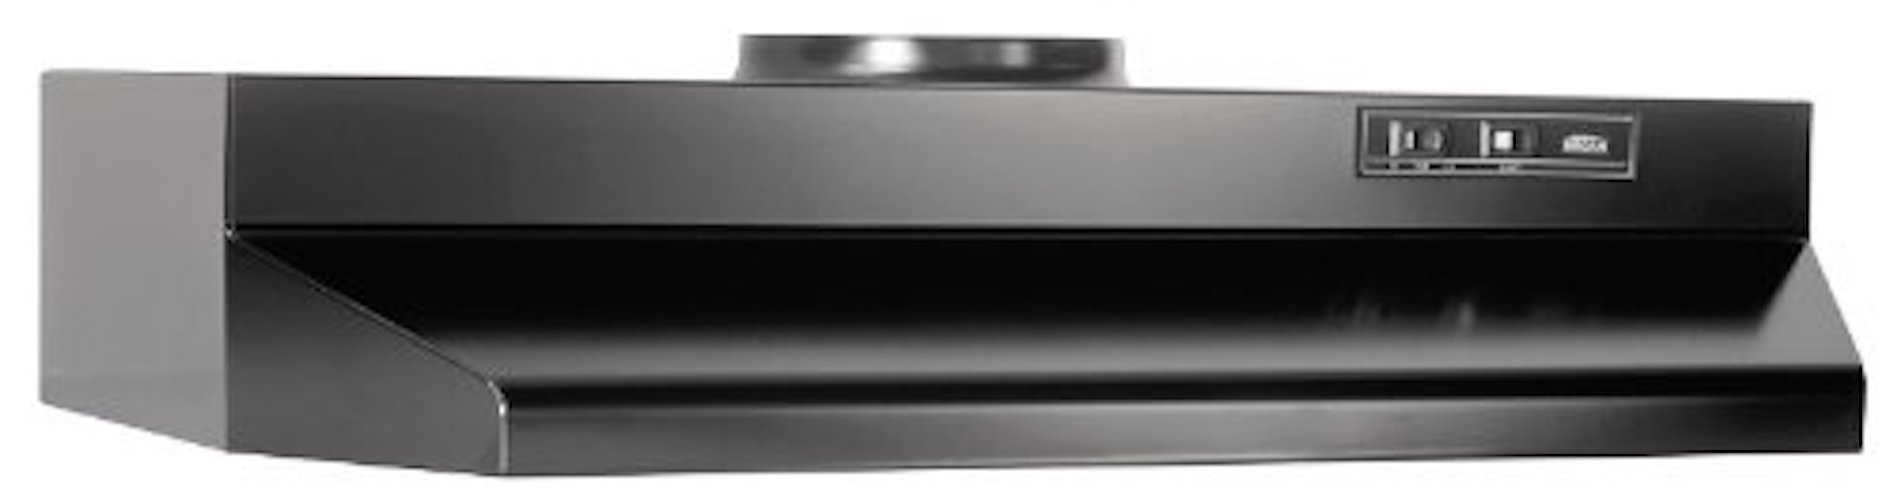 2. Broan 423023 ADA Capable Under-Cabinet Range Hood, 190 CFM 30-Inch, Black